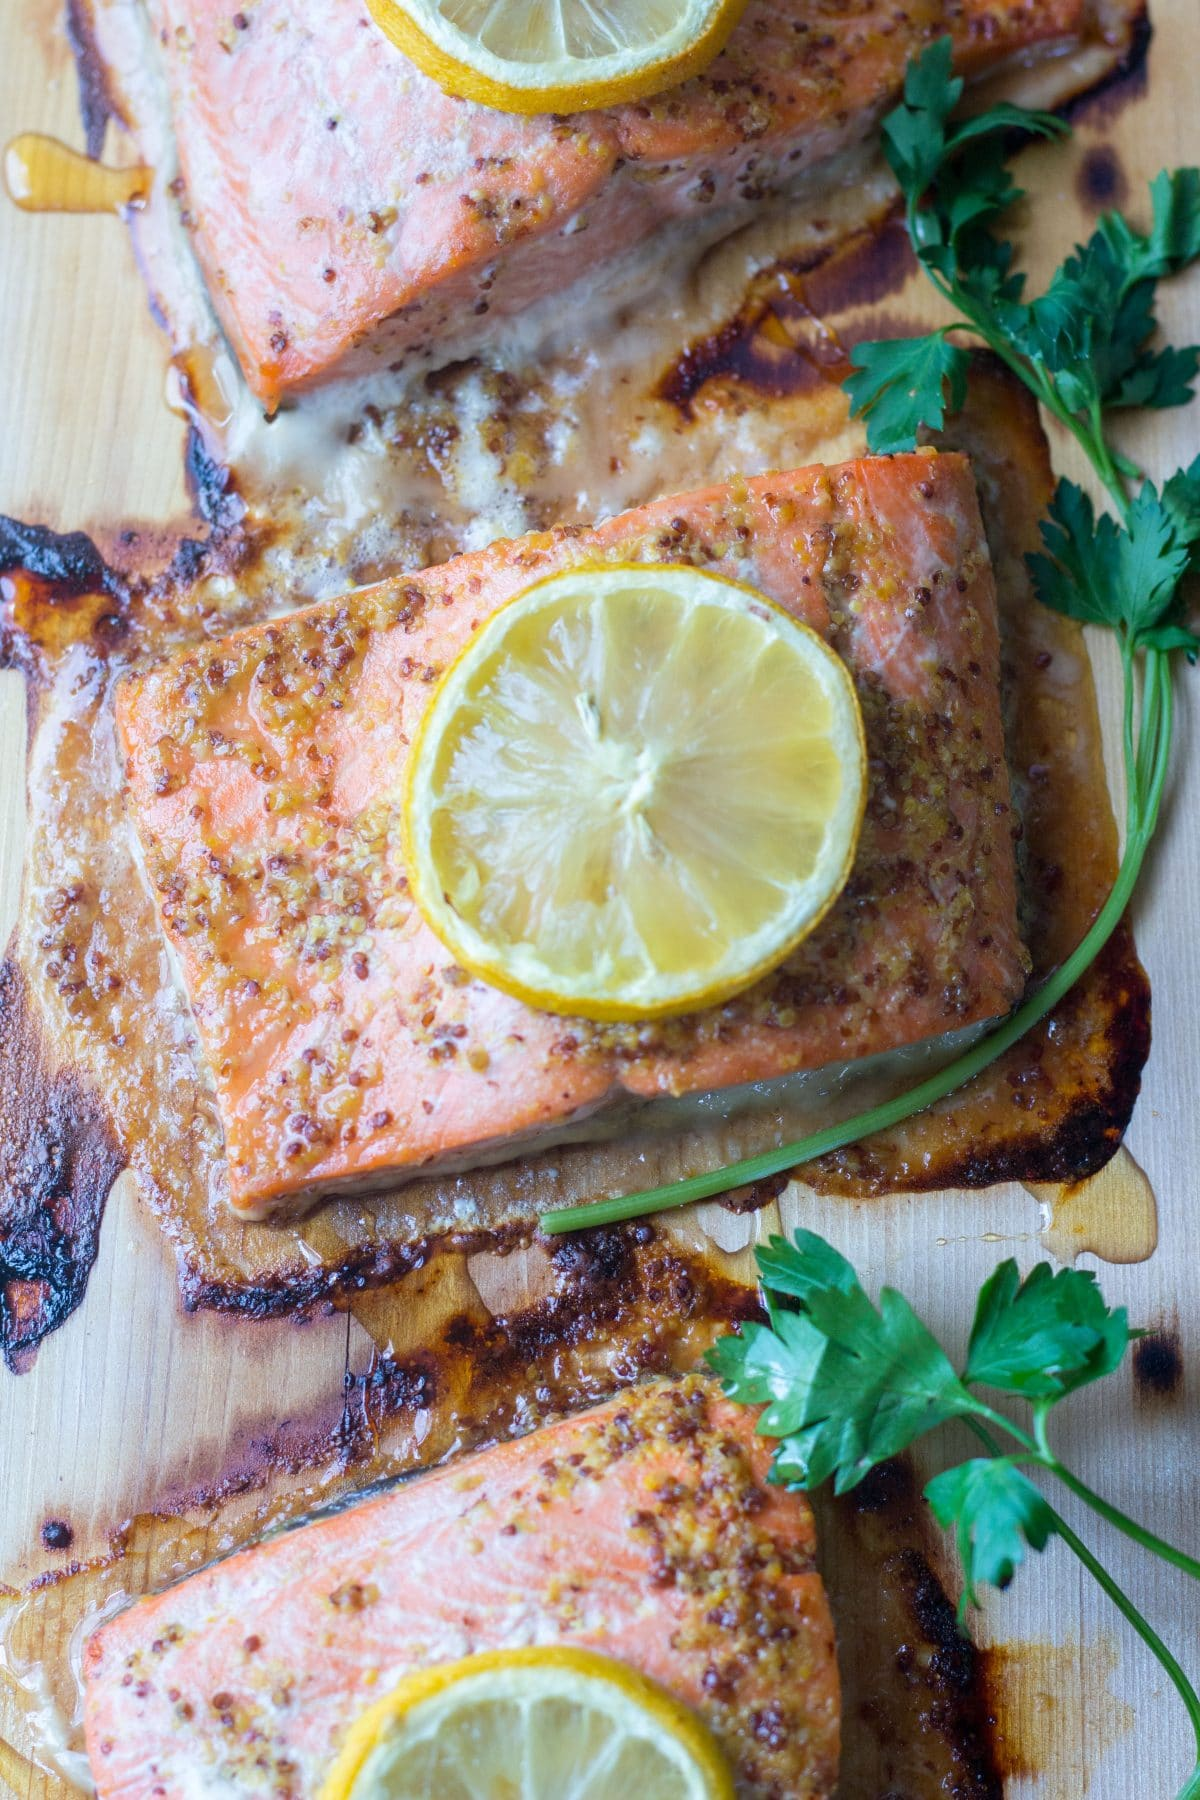 How To Make Cedar Plan Salmon & Veggies in the Oven